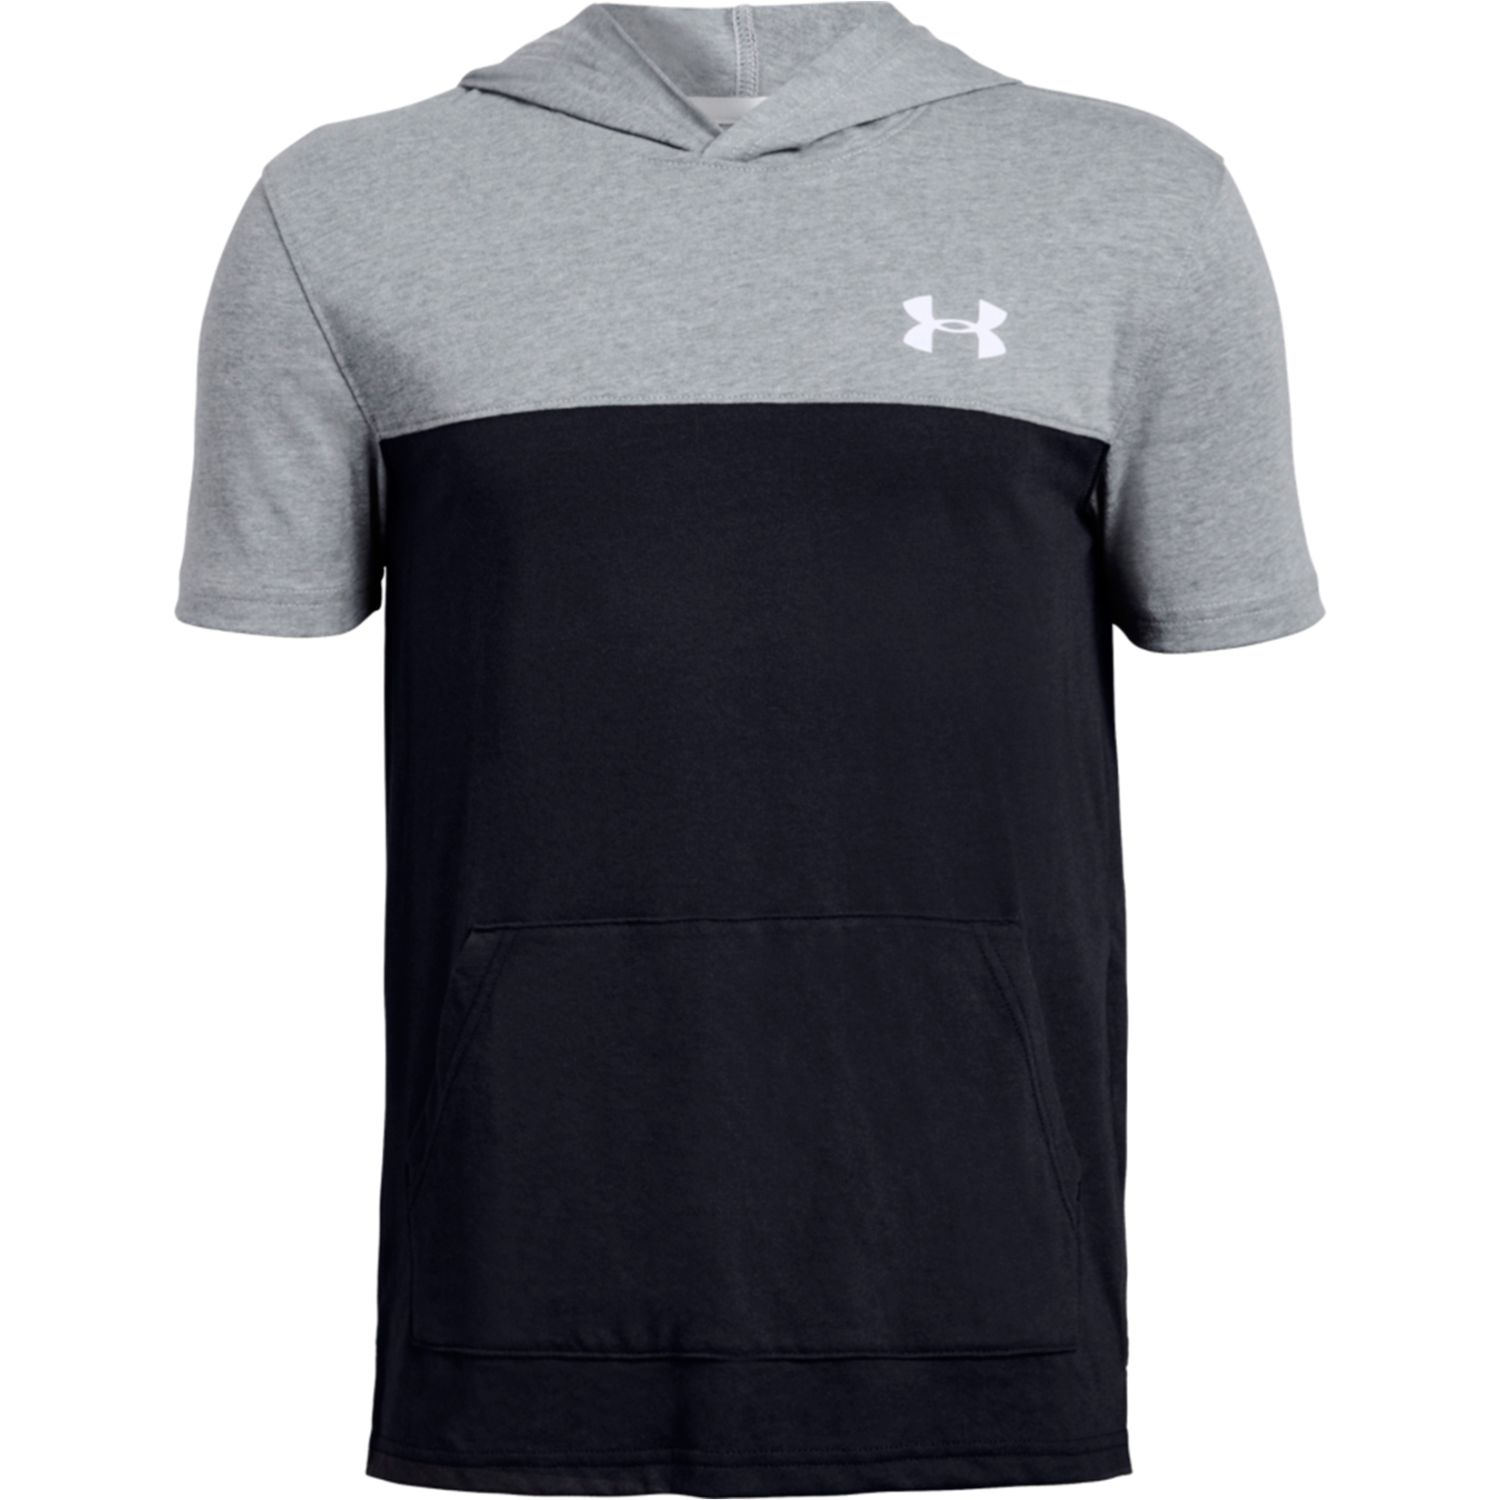 Under Armour sportstyle short sleeve hoody NEGRO / GRIS Hoodies Deportivos